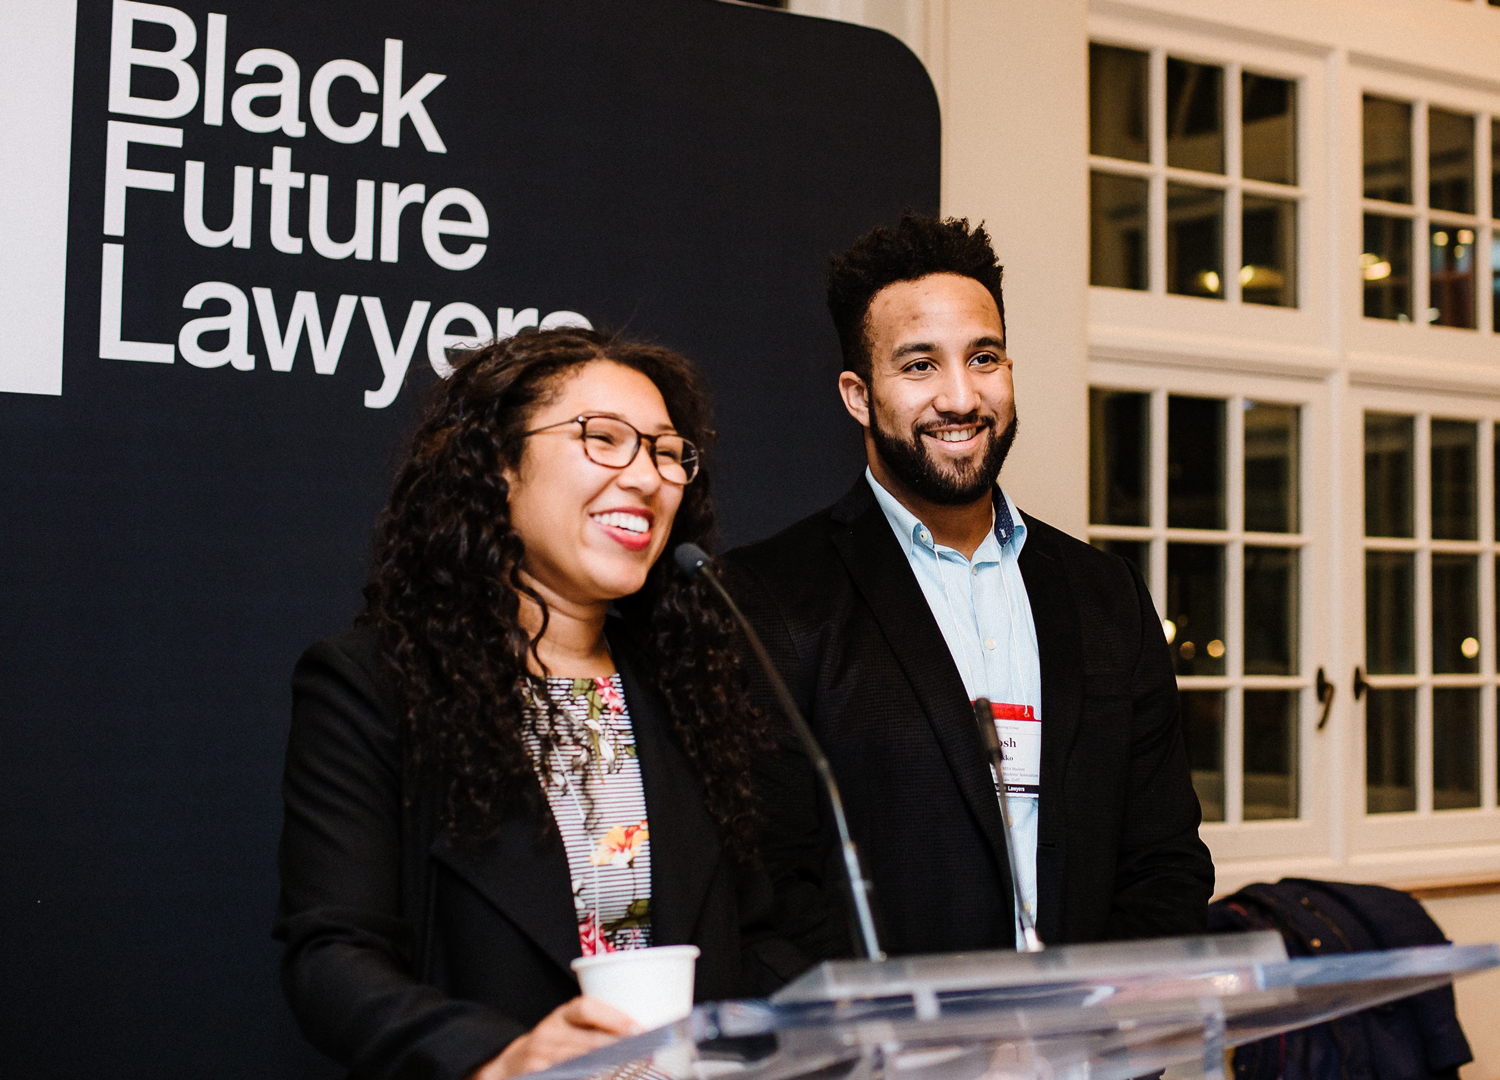 A newly formed partnership of leading Canadian law firms commits  $1.75million to the groundbreaking Black Future Lawyers program